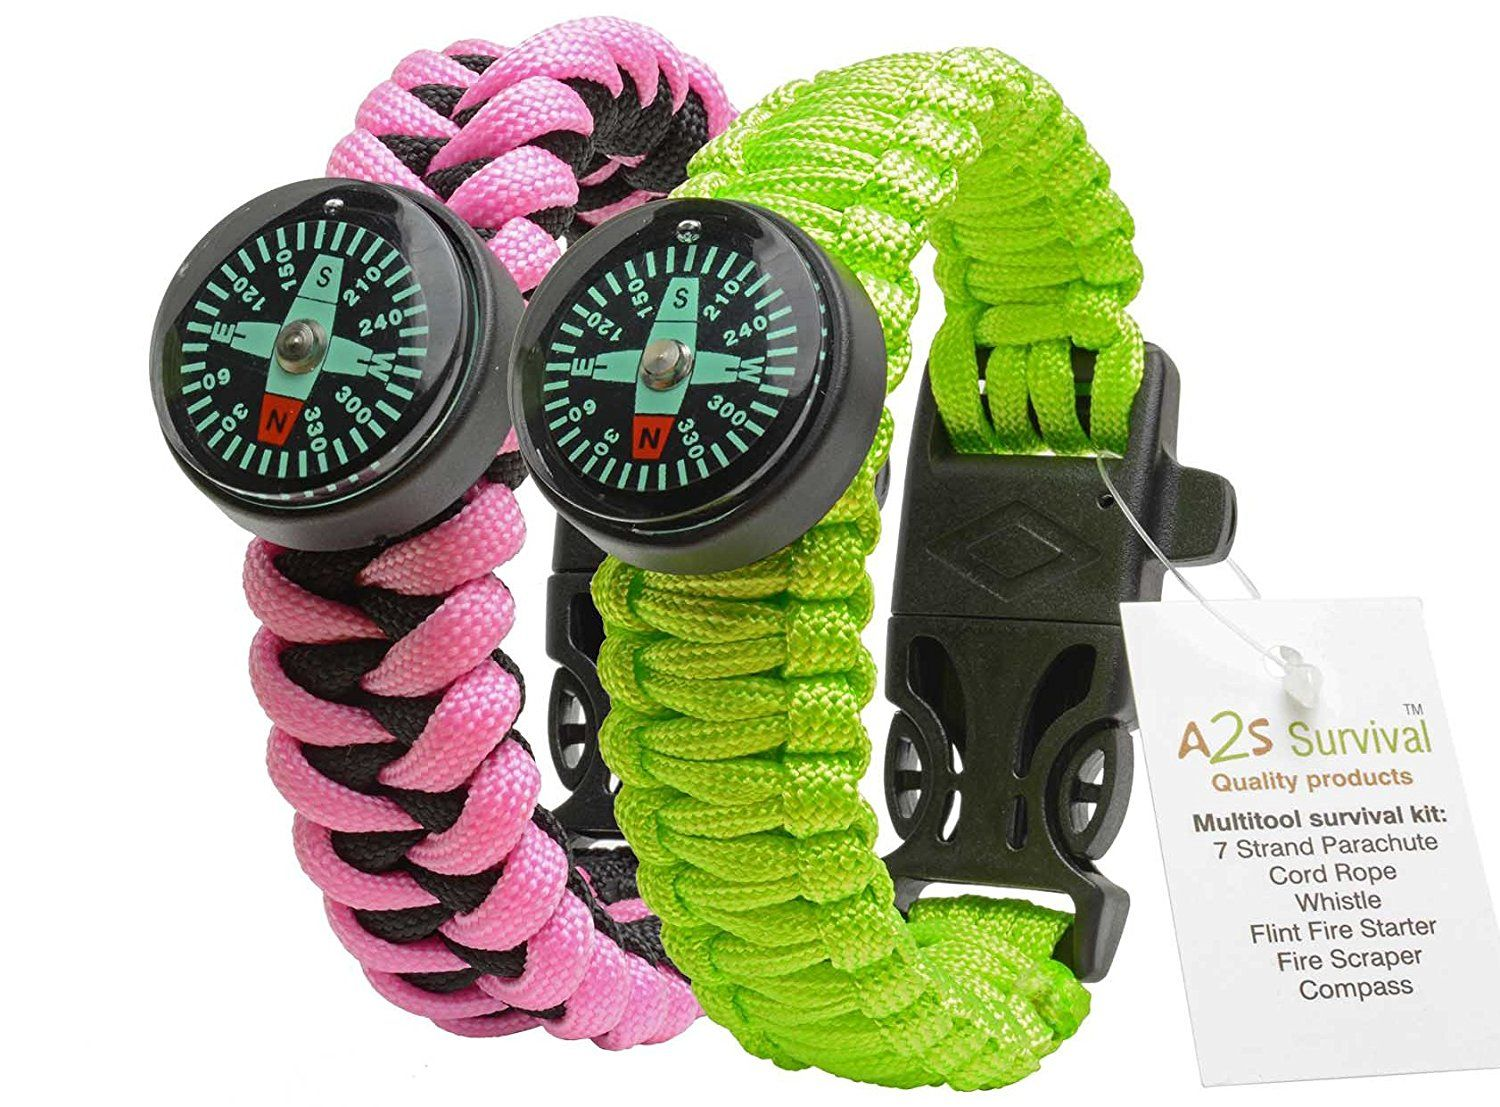 A2s Paracord Bracelet Survival Gear Kit Colorful Everest Series With Built In New Type Compass Fire Starte Fire Starters Emergency Whistles Flint Fire Starter